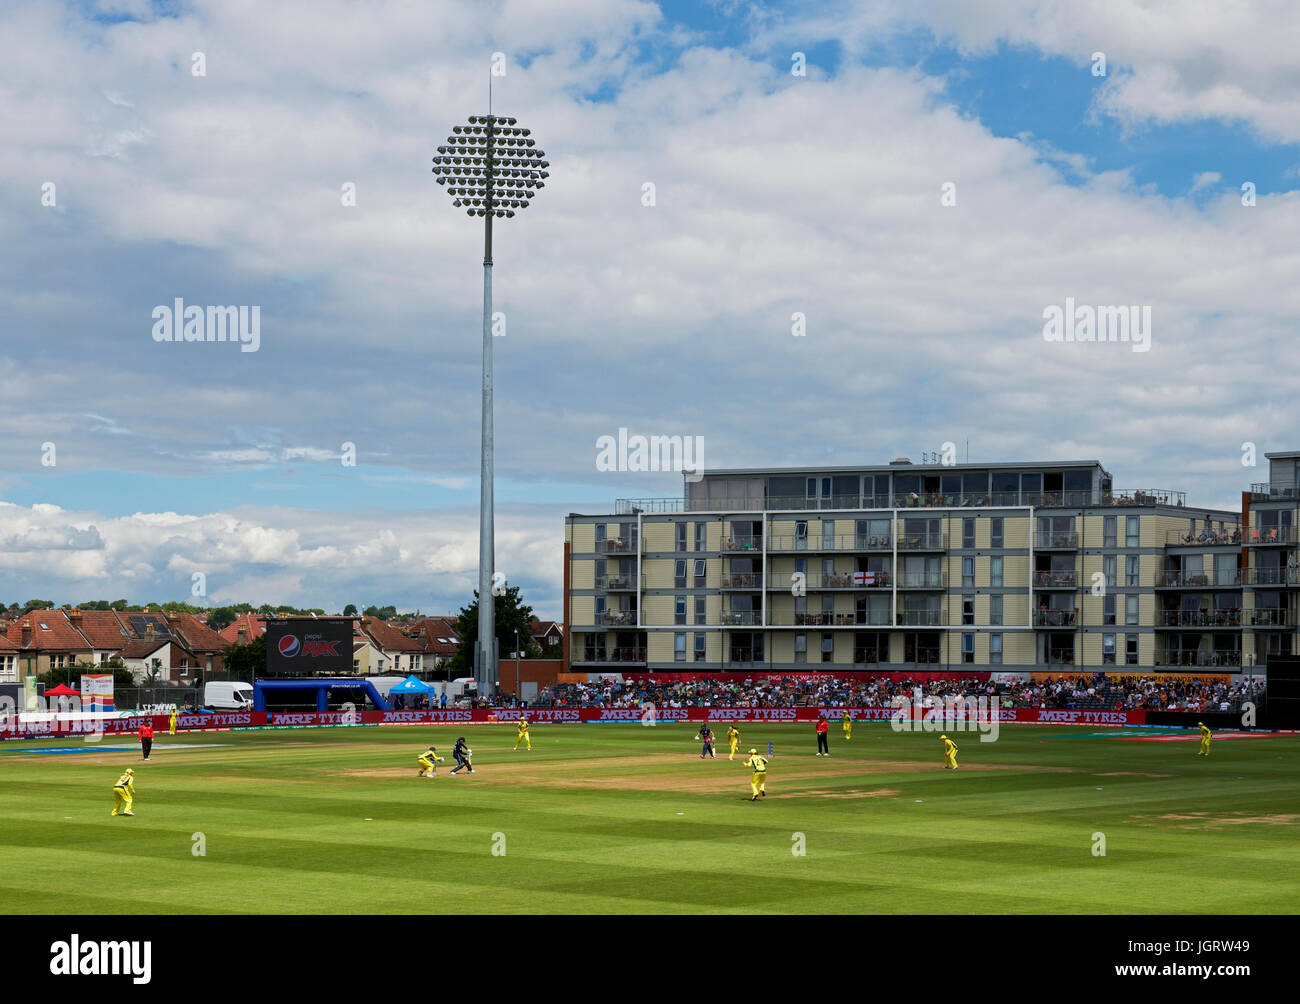 Women's International Cricket at Bristol, Gloucestershire, England UK Stock Photo